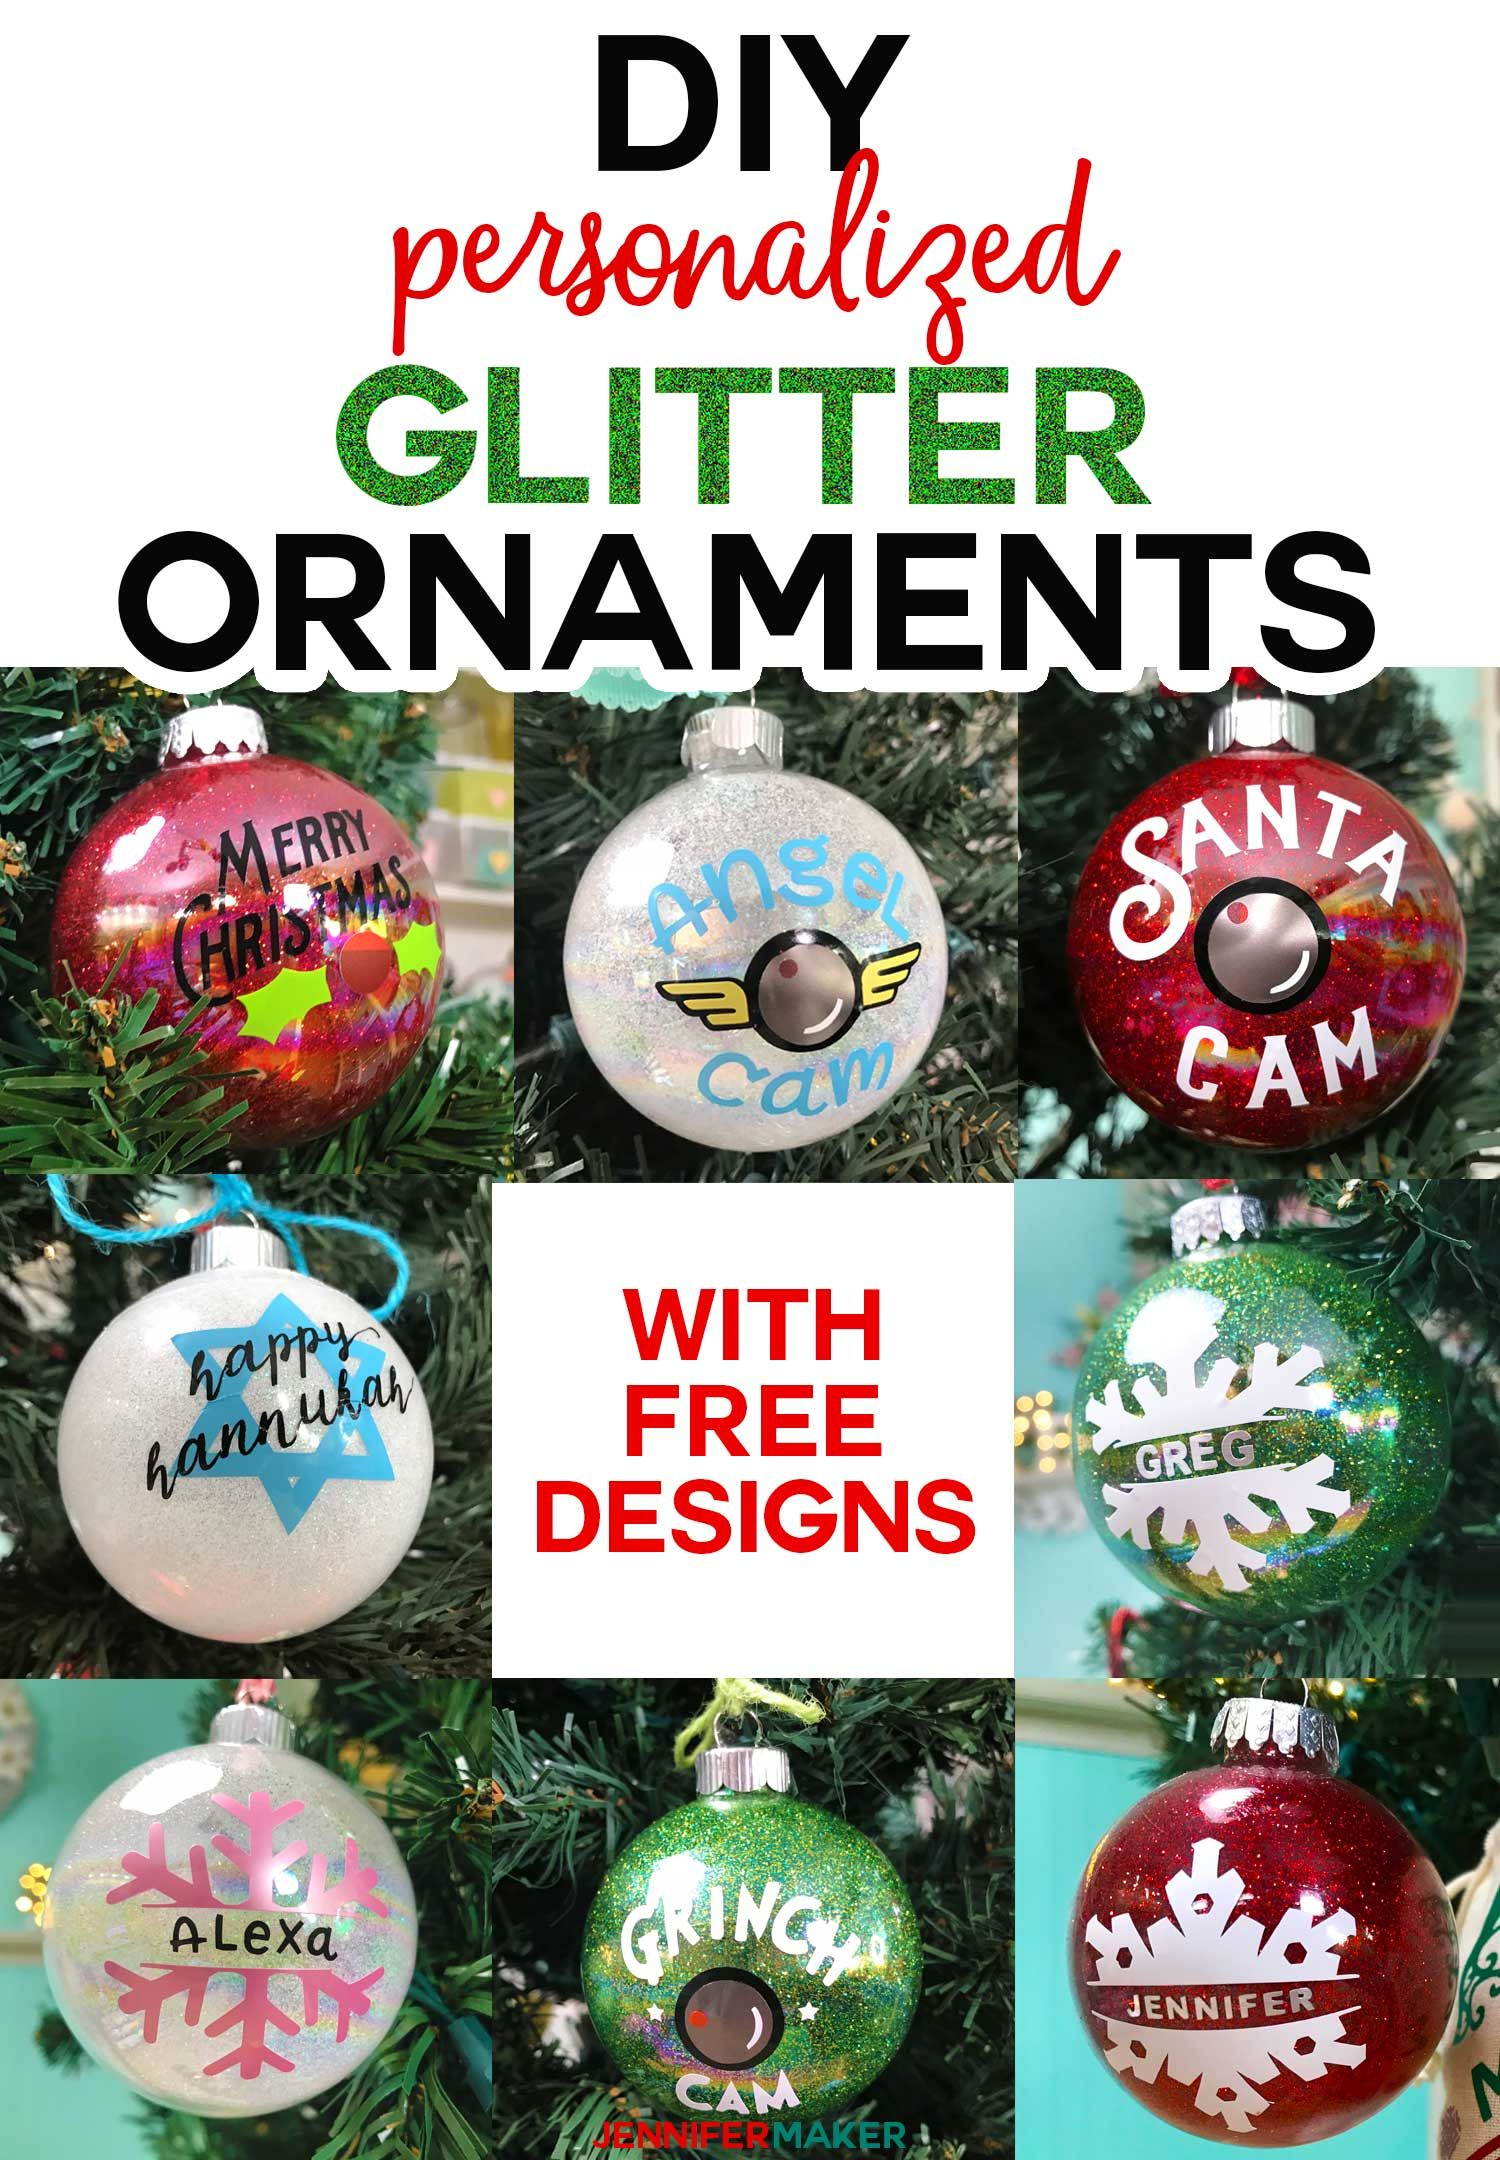 Diy Glitter Ornaments With Layered Vinyl Jennifer Maker Cricut Christmas Ideas Christmas Ornaments Homemade Personalized Christmas Ornaments